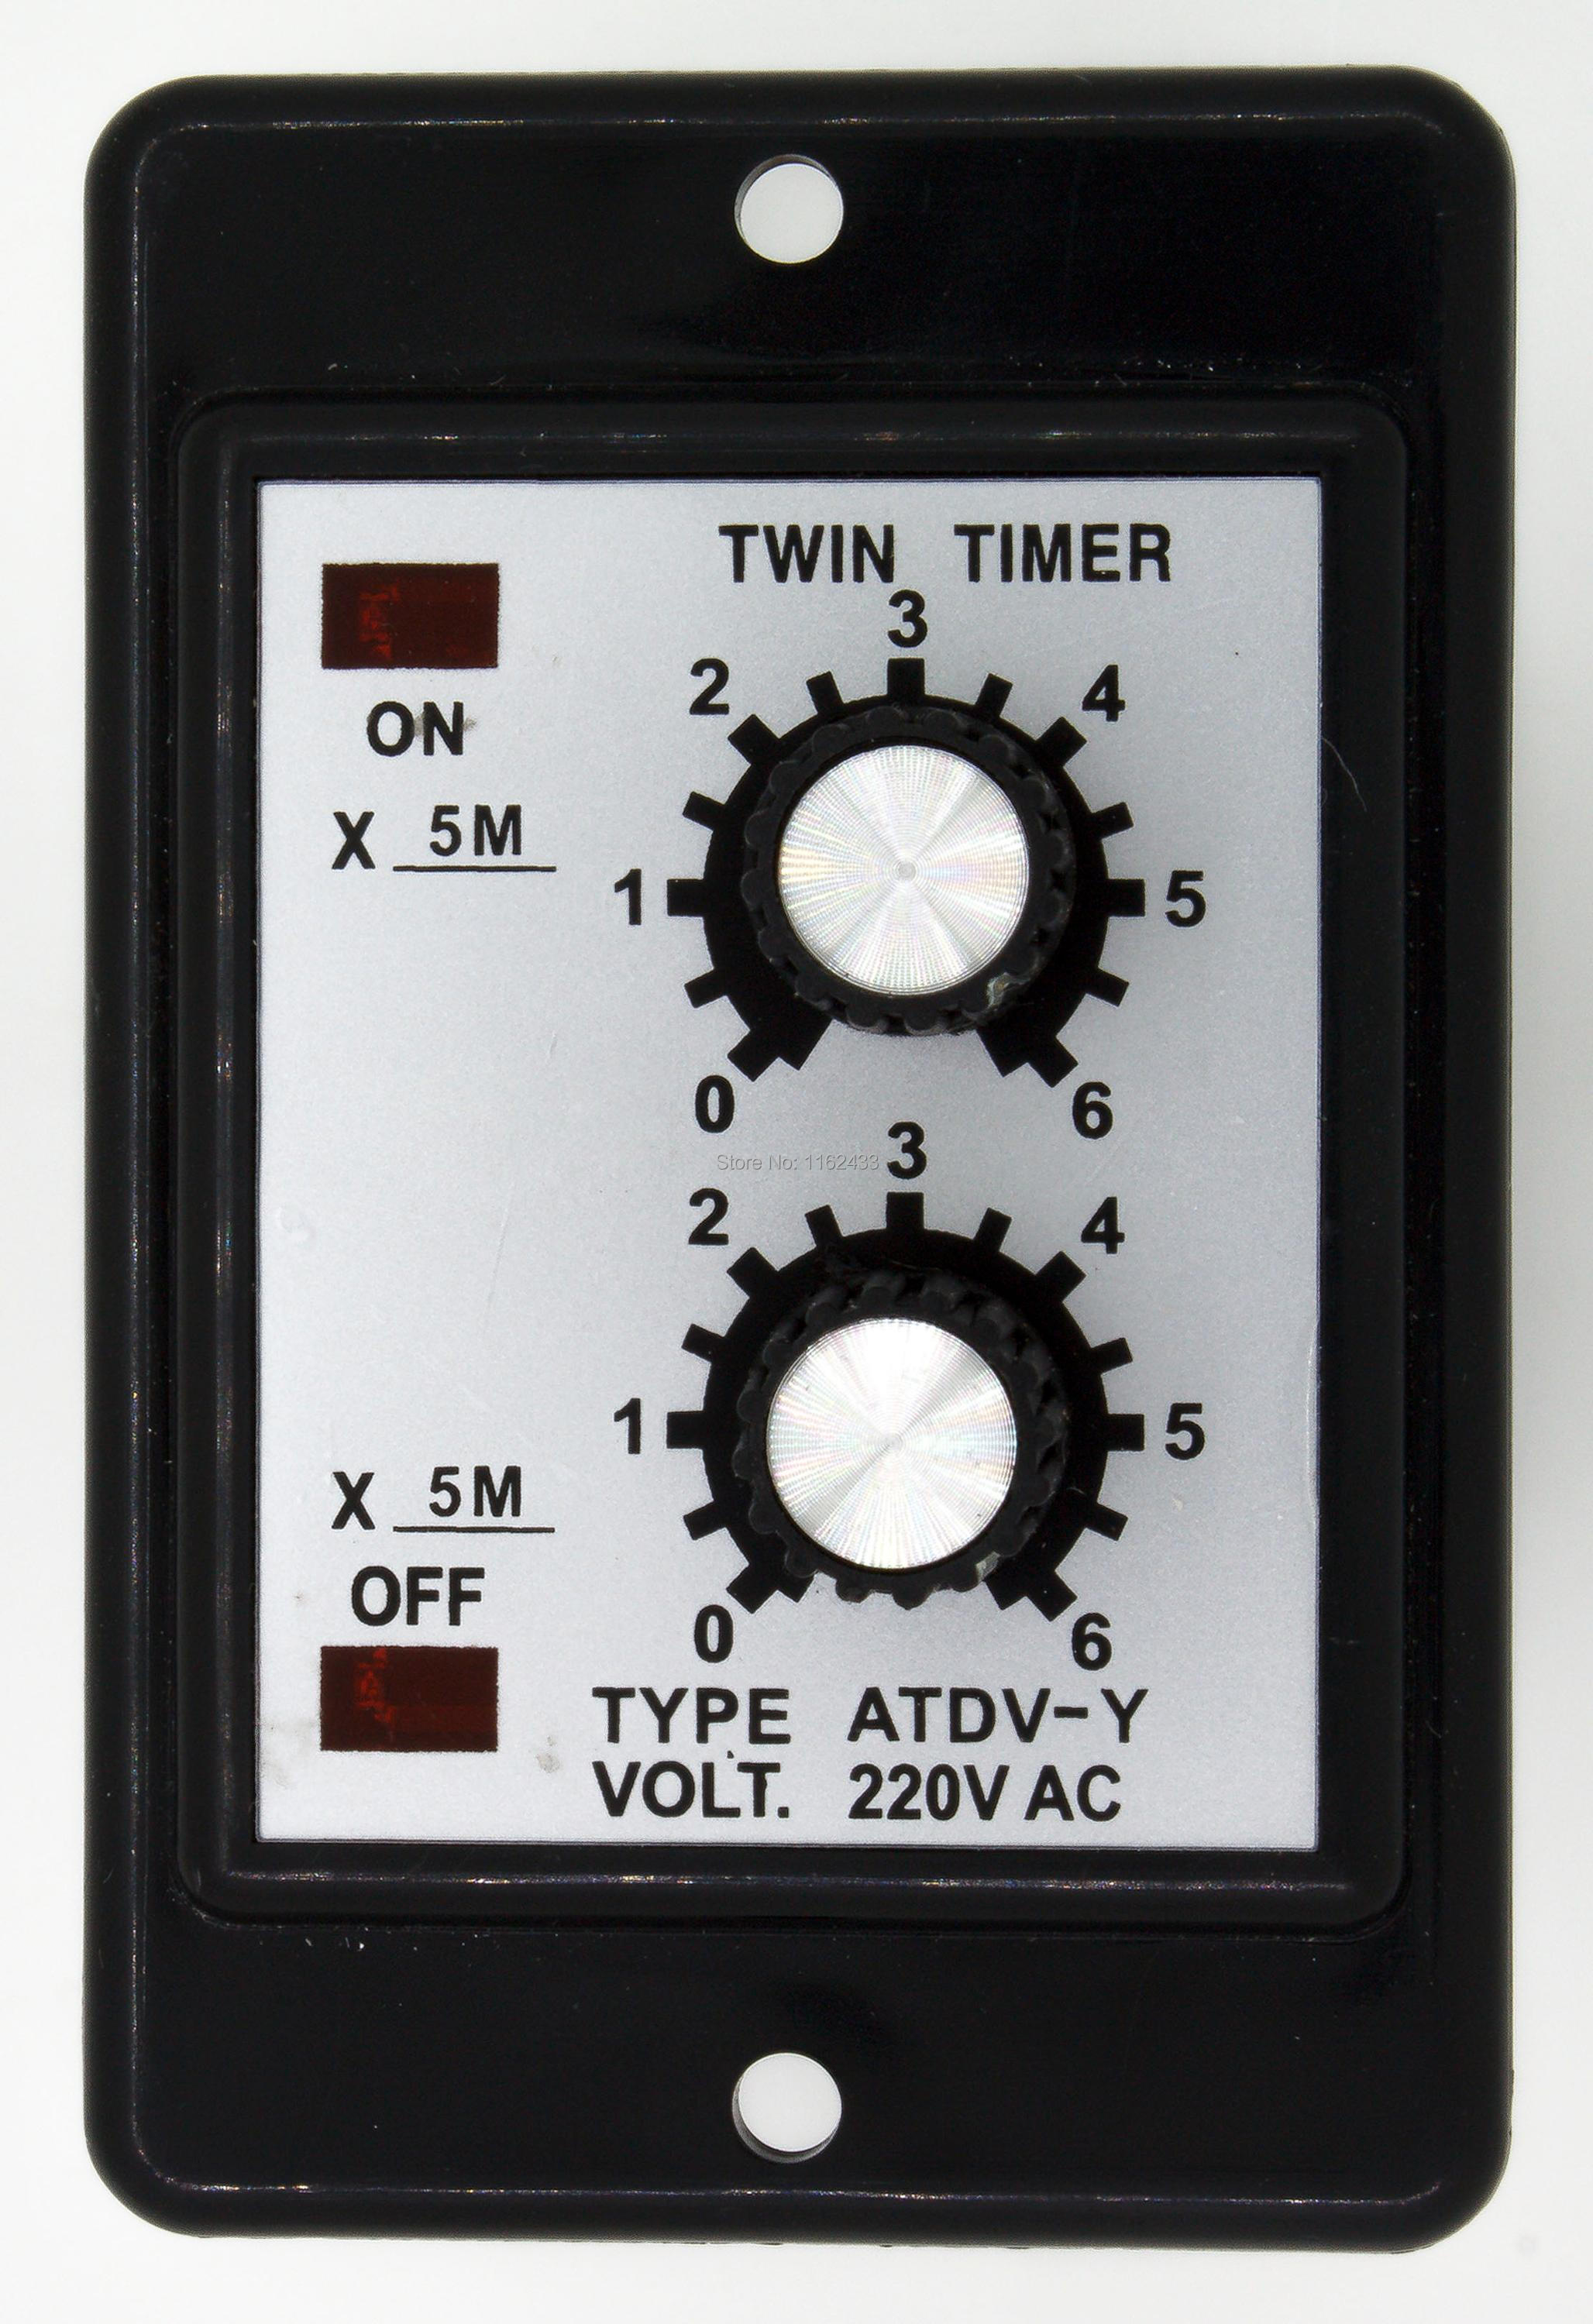 hight resolution of atdv y ac 220v repeat cycle spdt time relay atdv series 220vac twin pinrelaydiagram atdvy 30s 220v ac twin timer relay view twin timer source aexit asy 2d